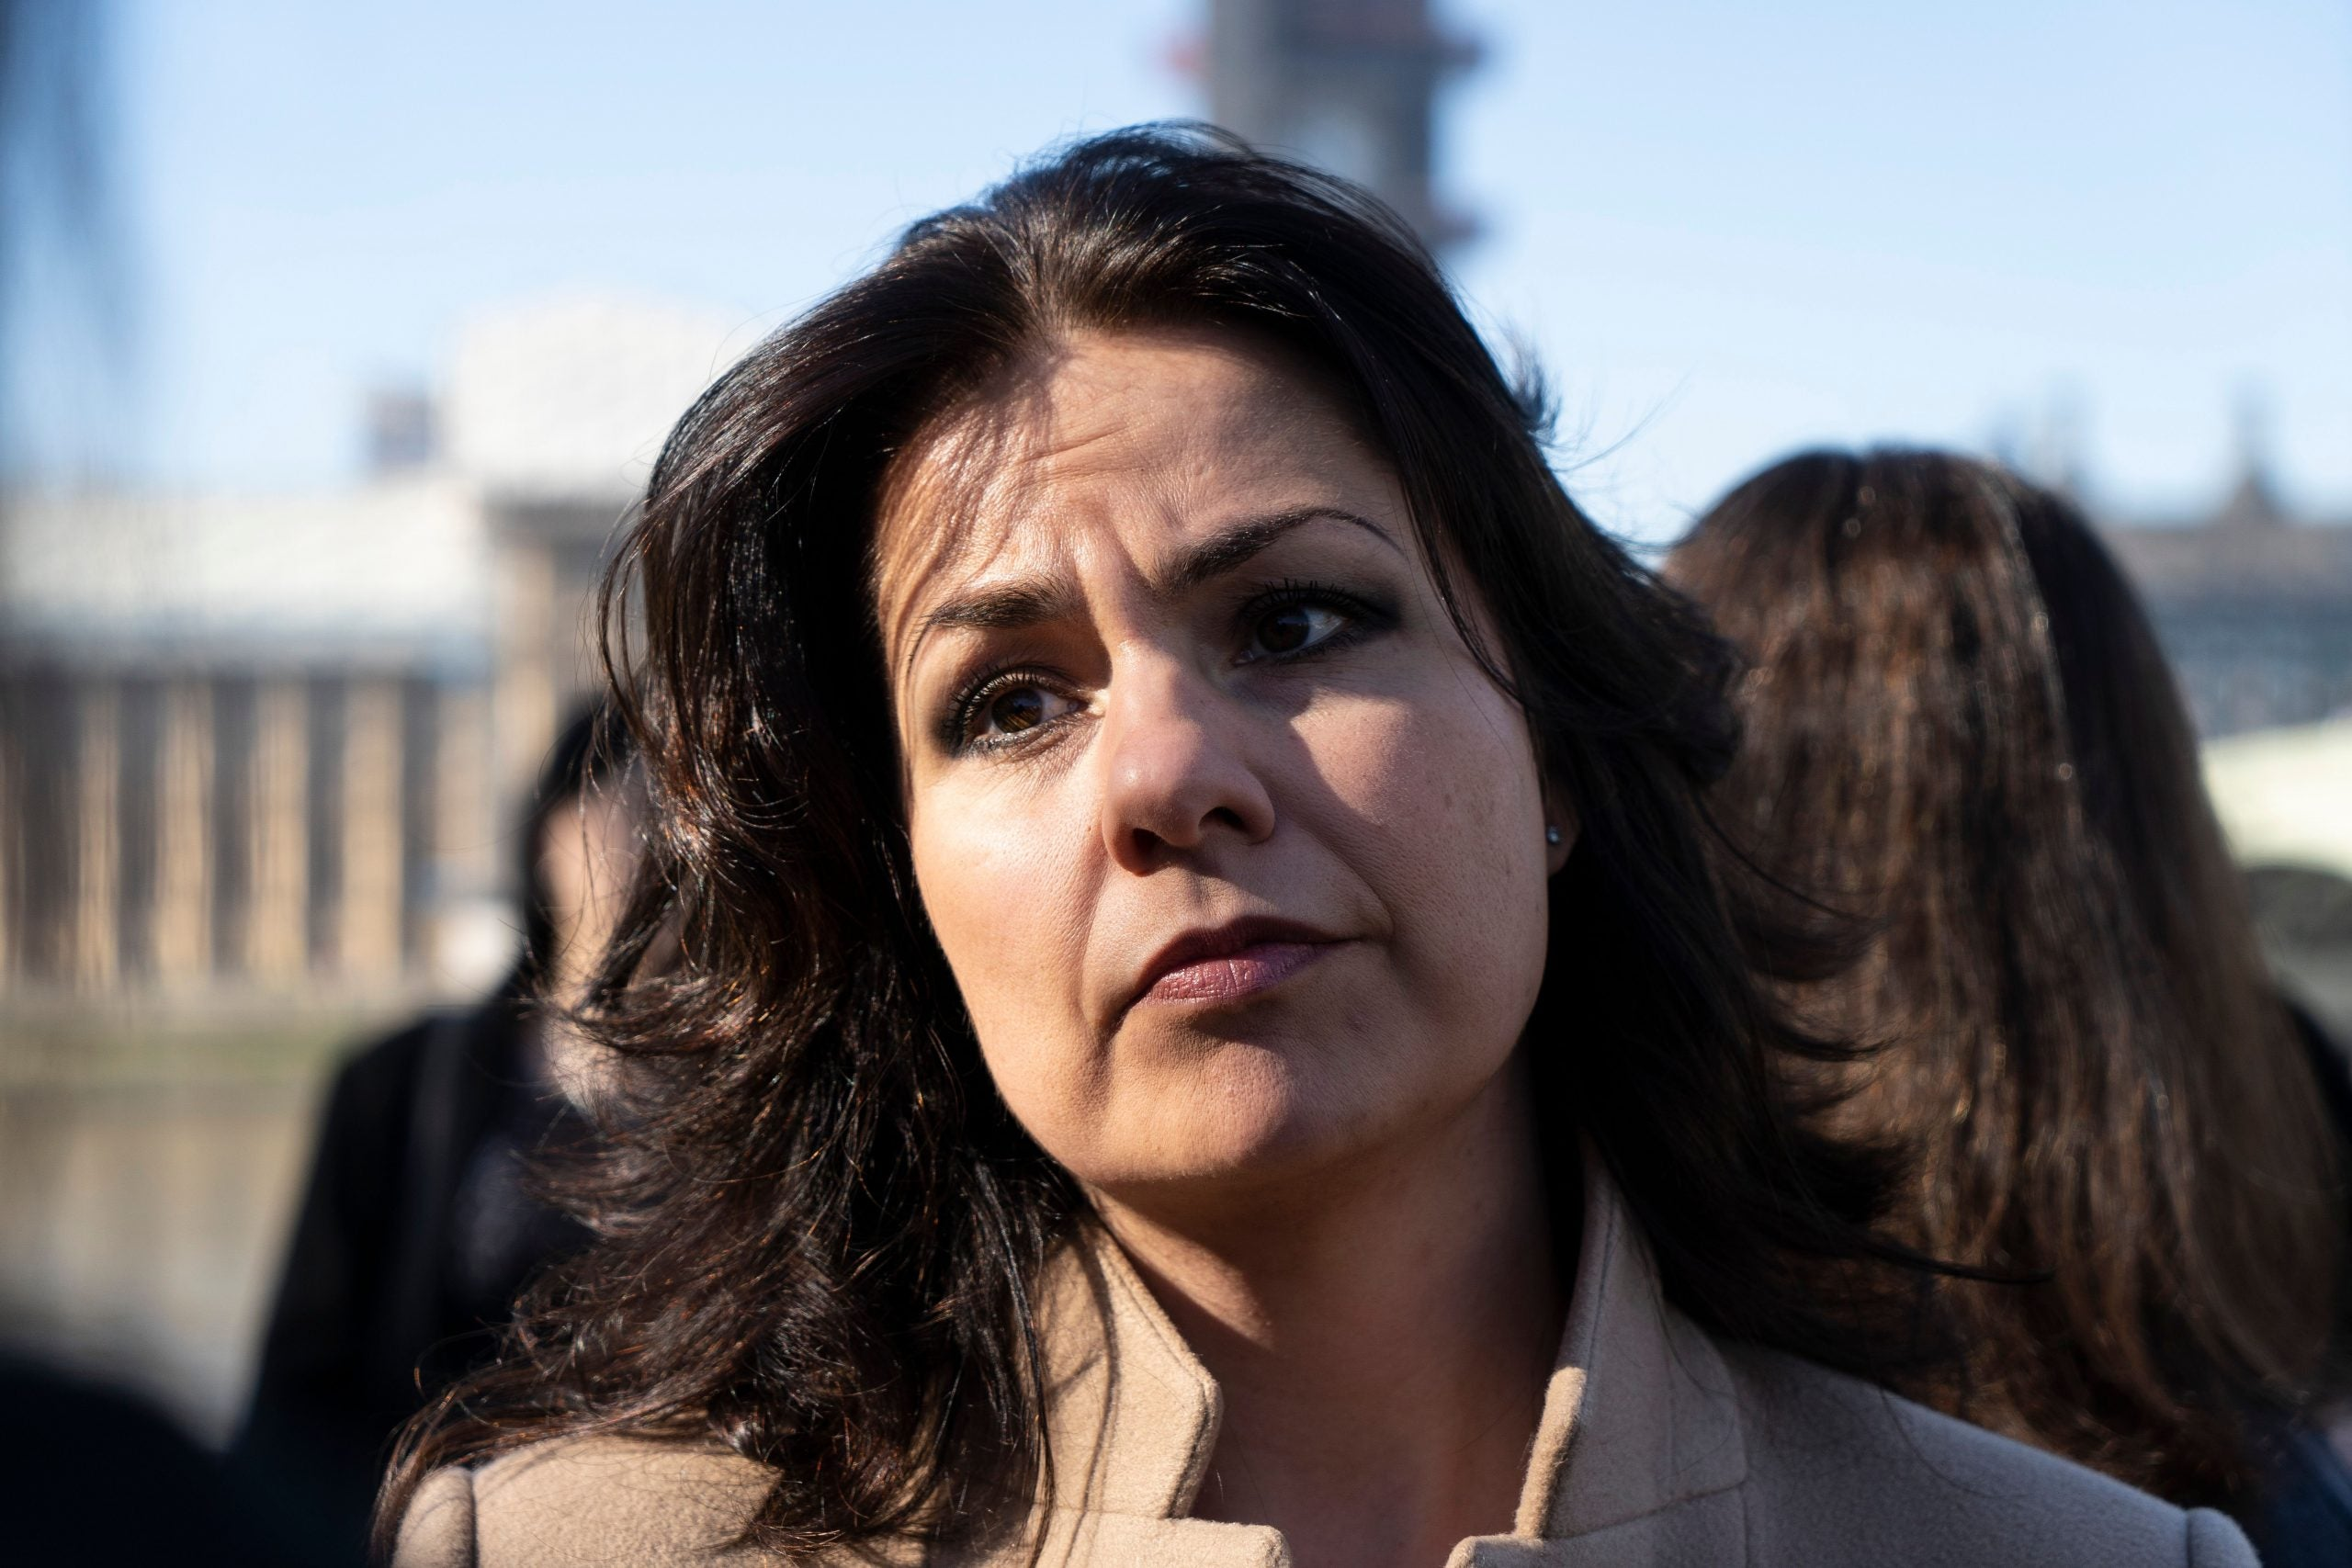 With Heidi Allen as leader, TIG confirms its anti-system politics